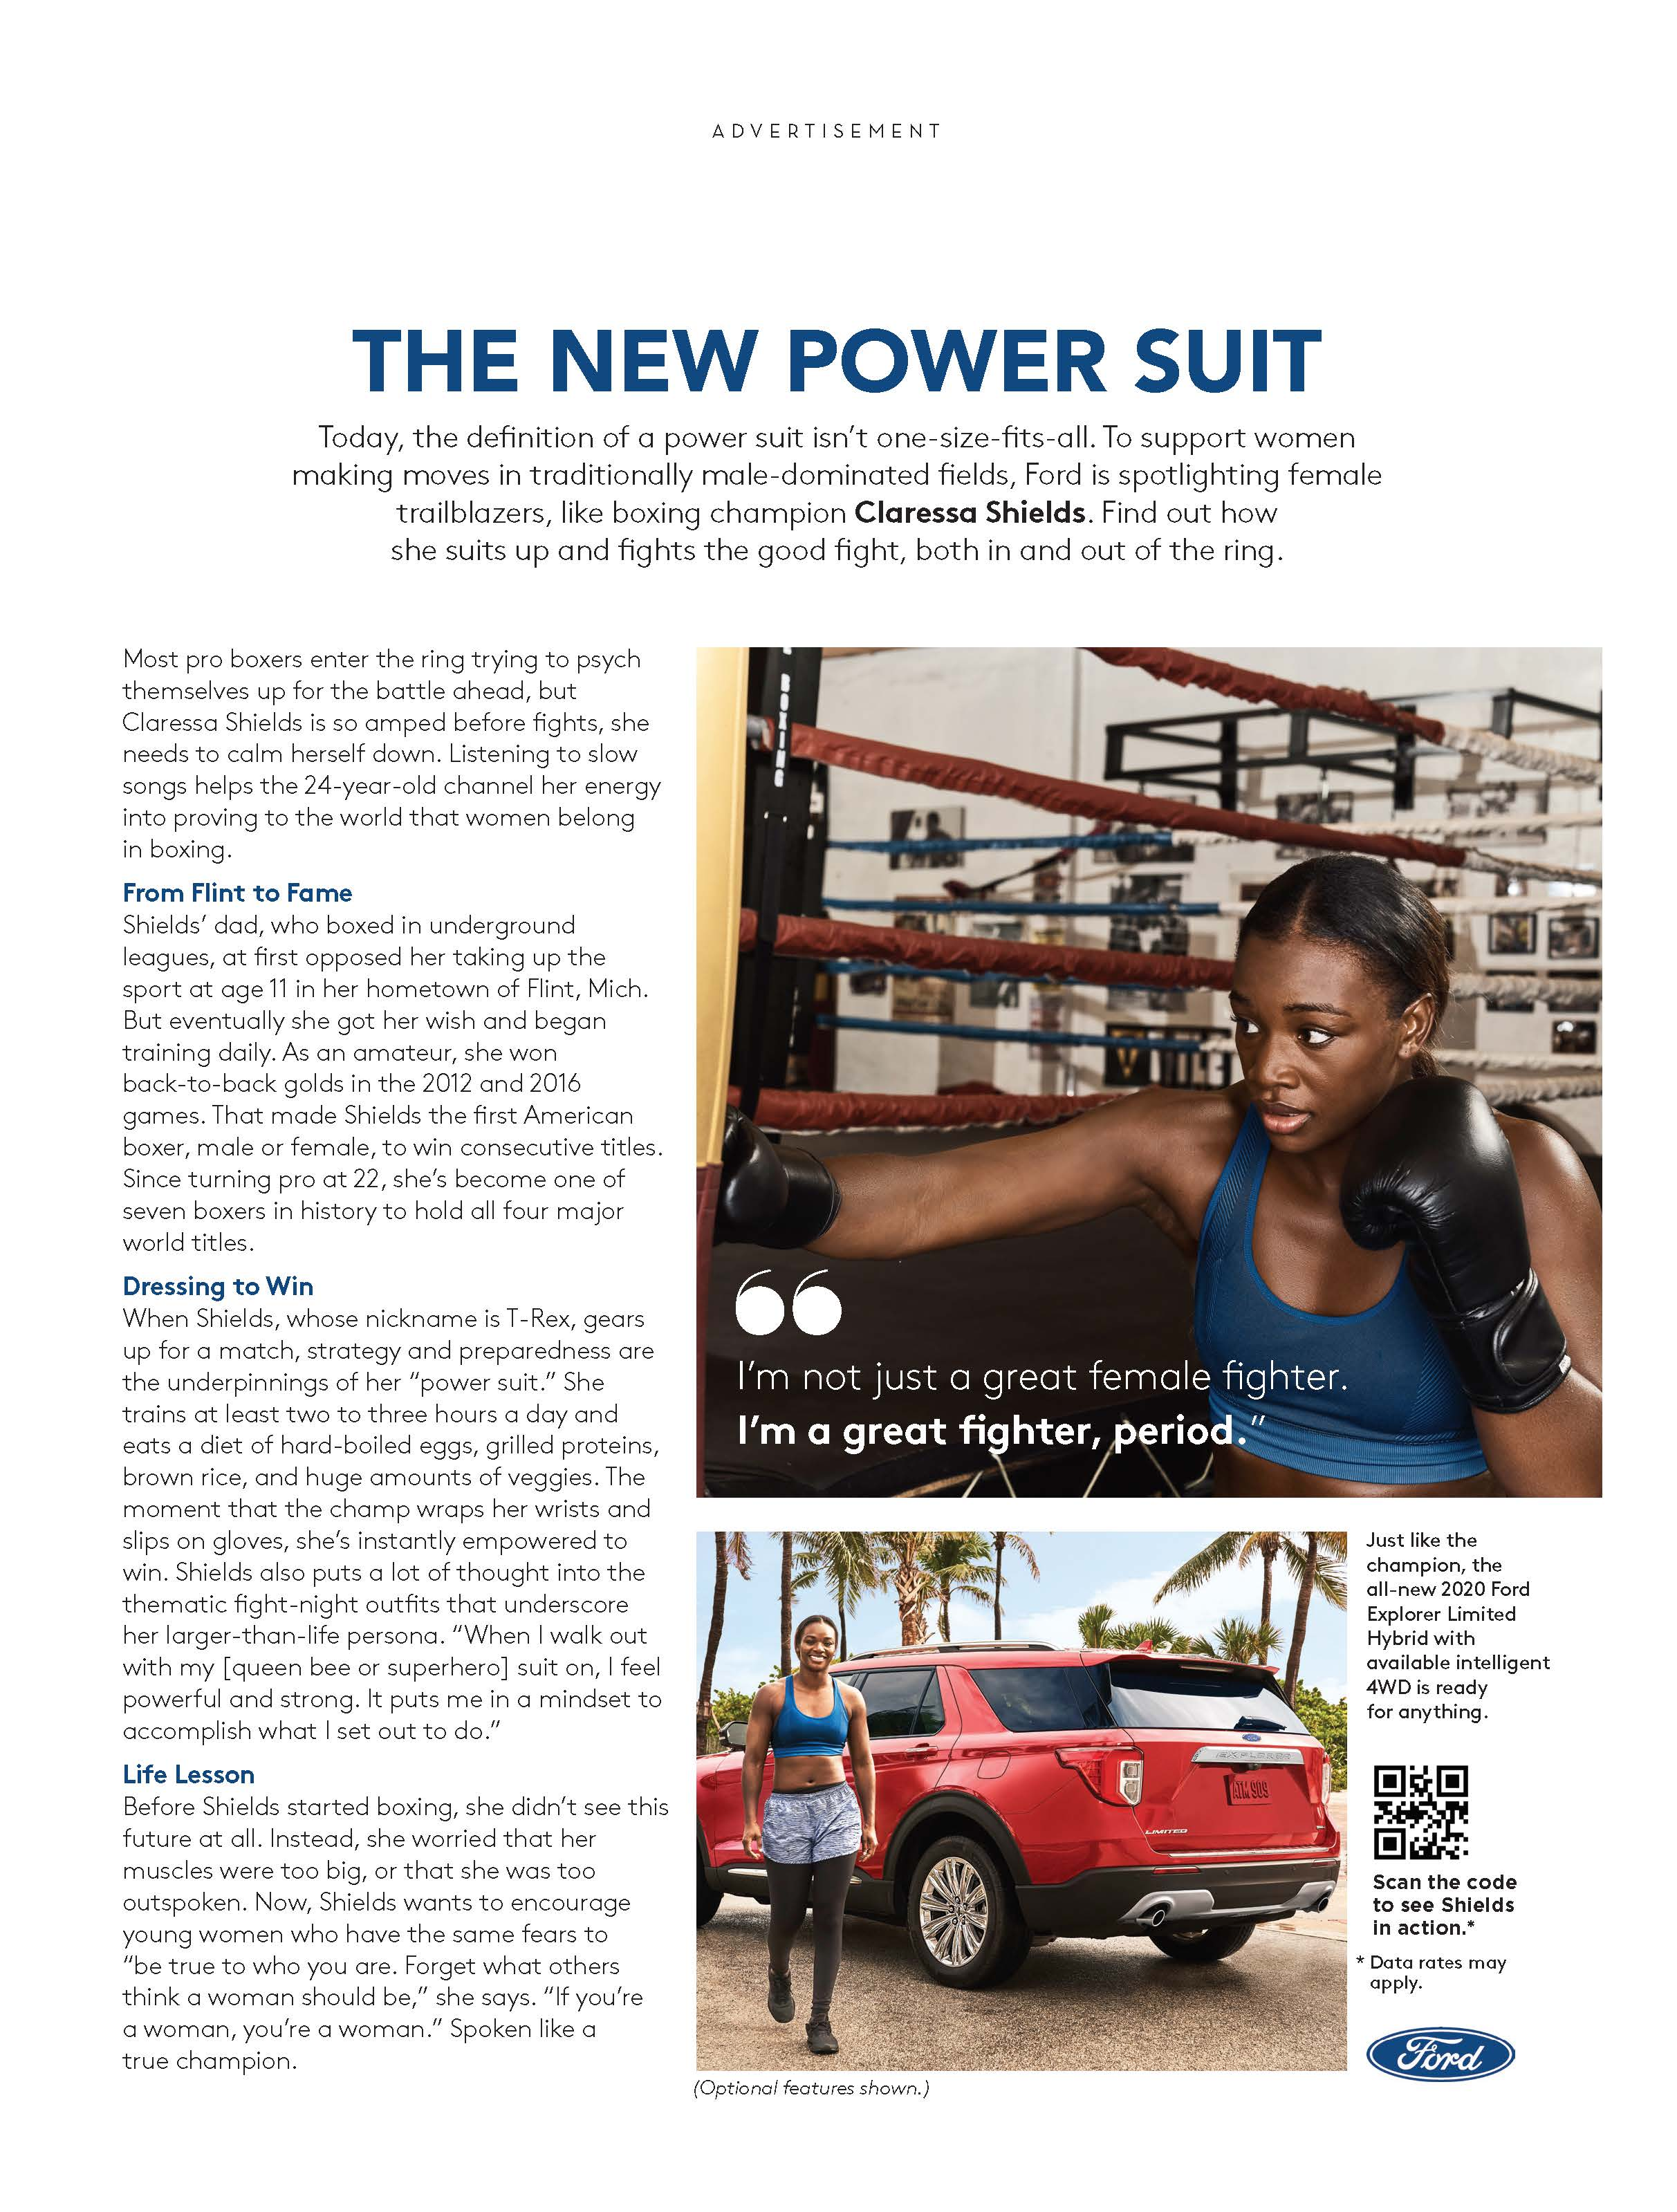 FORD_Health_ClaressaShields_FINAL_Native